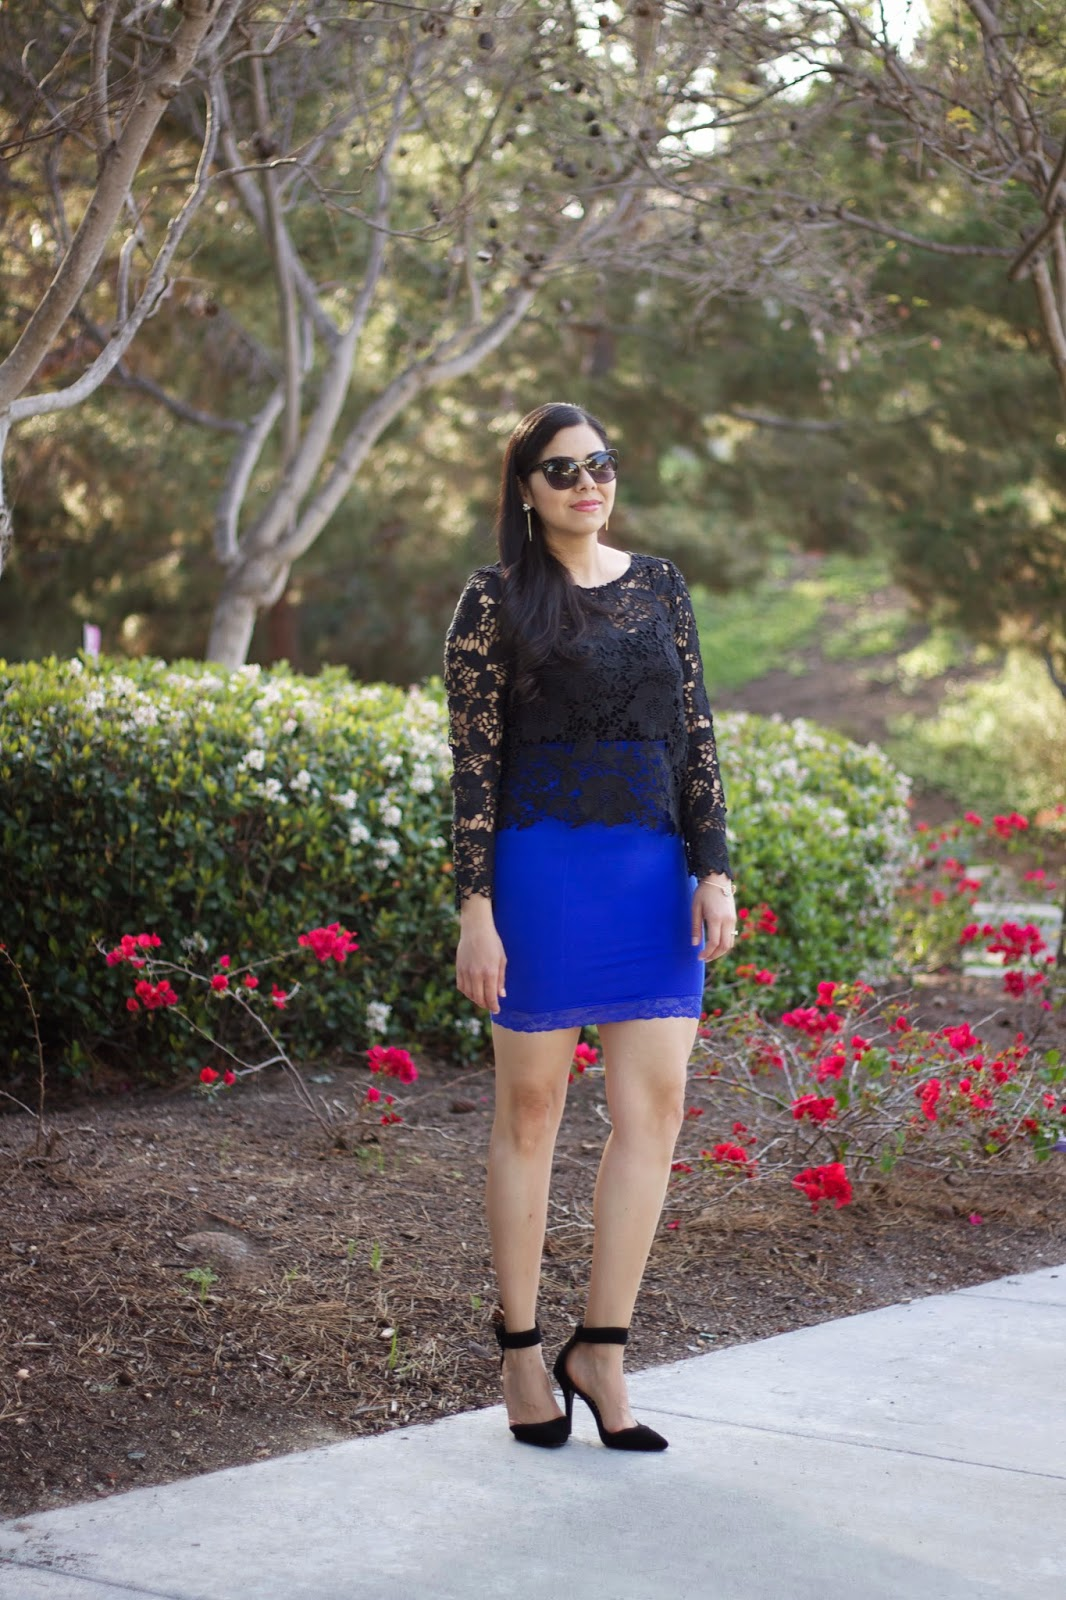 chic fashion blogger in california, girls night out outfit 2015, san diego fashion, san diego street style